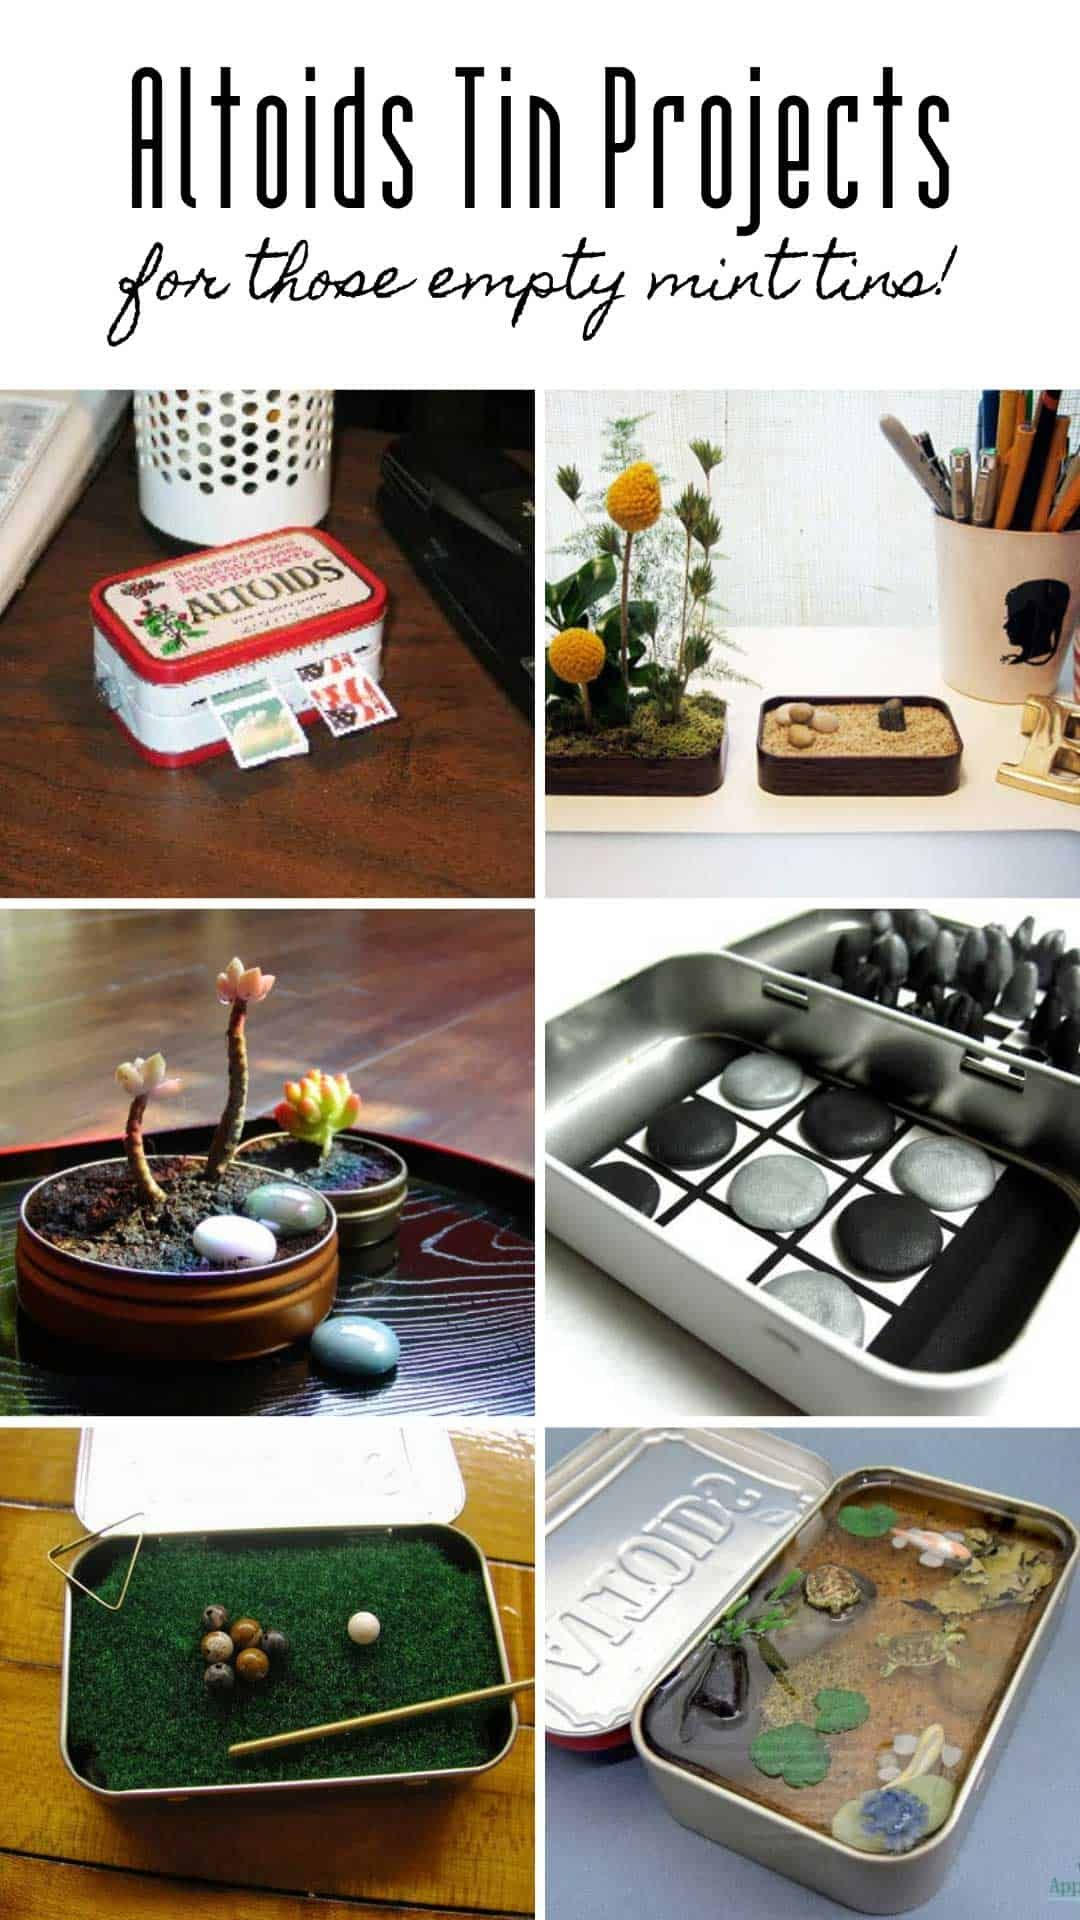 Ideas : What can you do with an empty altoids tin? So many creative things according to this list! I love the mini pool table, succulent holder and fish pond!